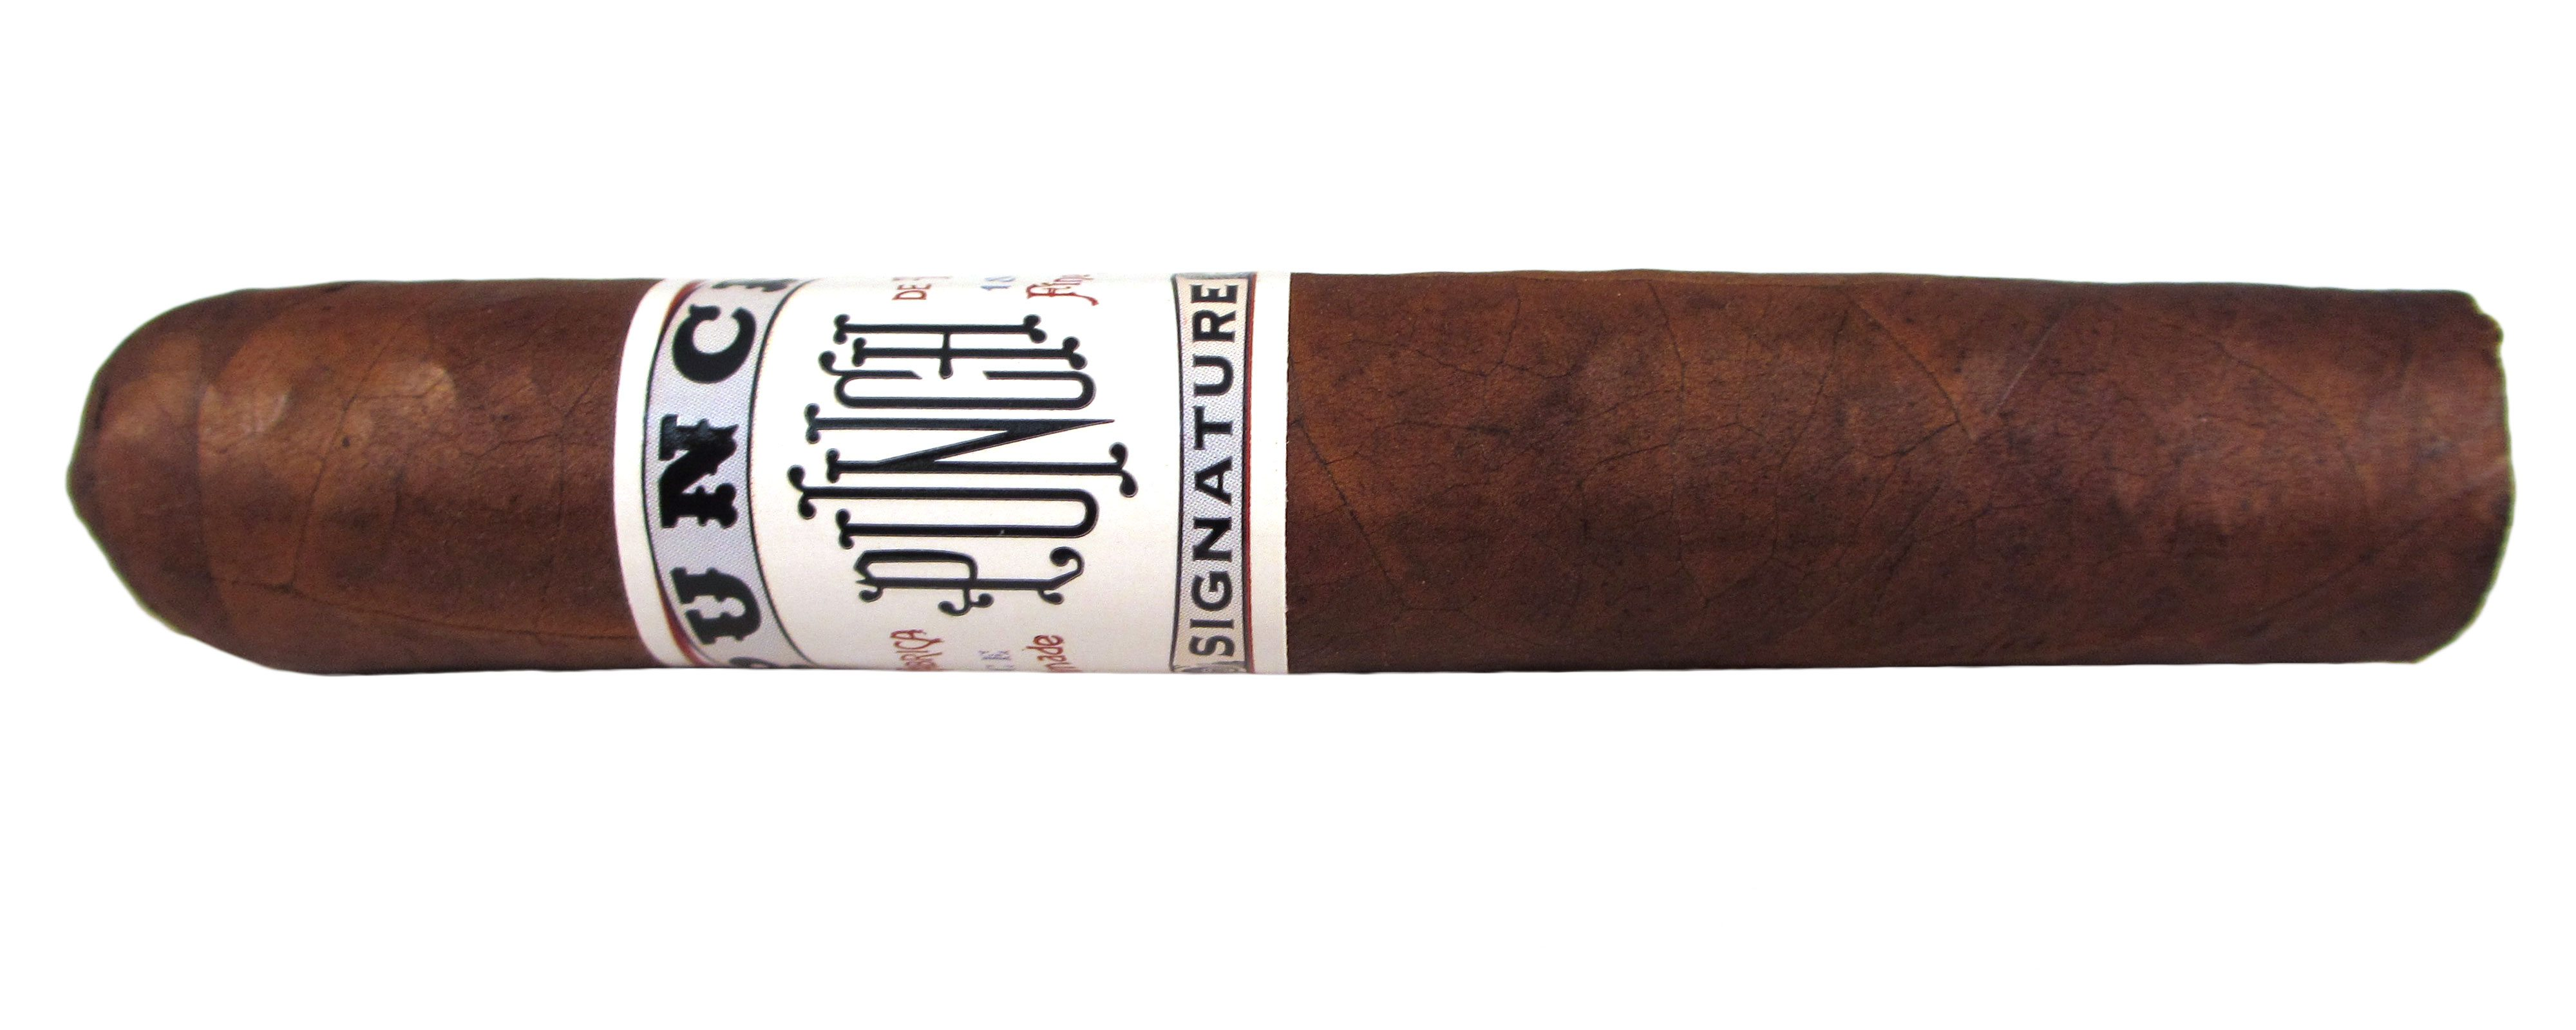 Blind Cigar Review: Punch | Signature Robusto